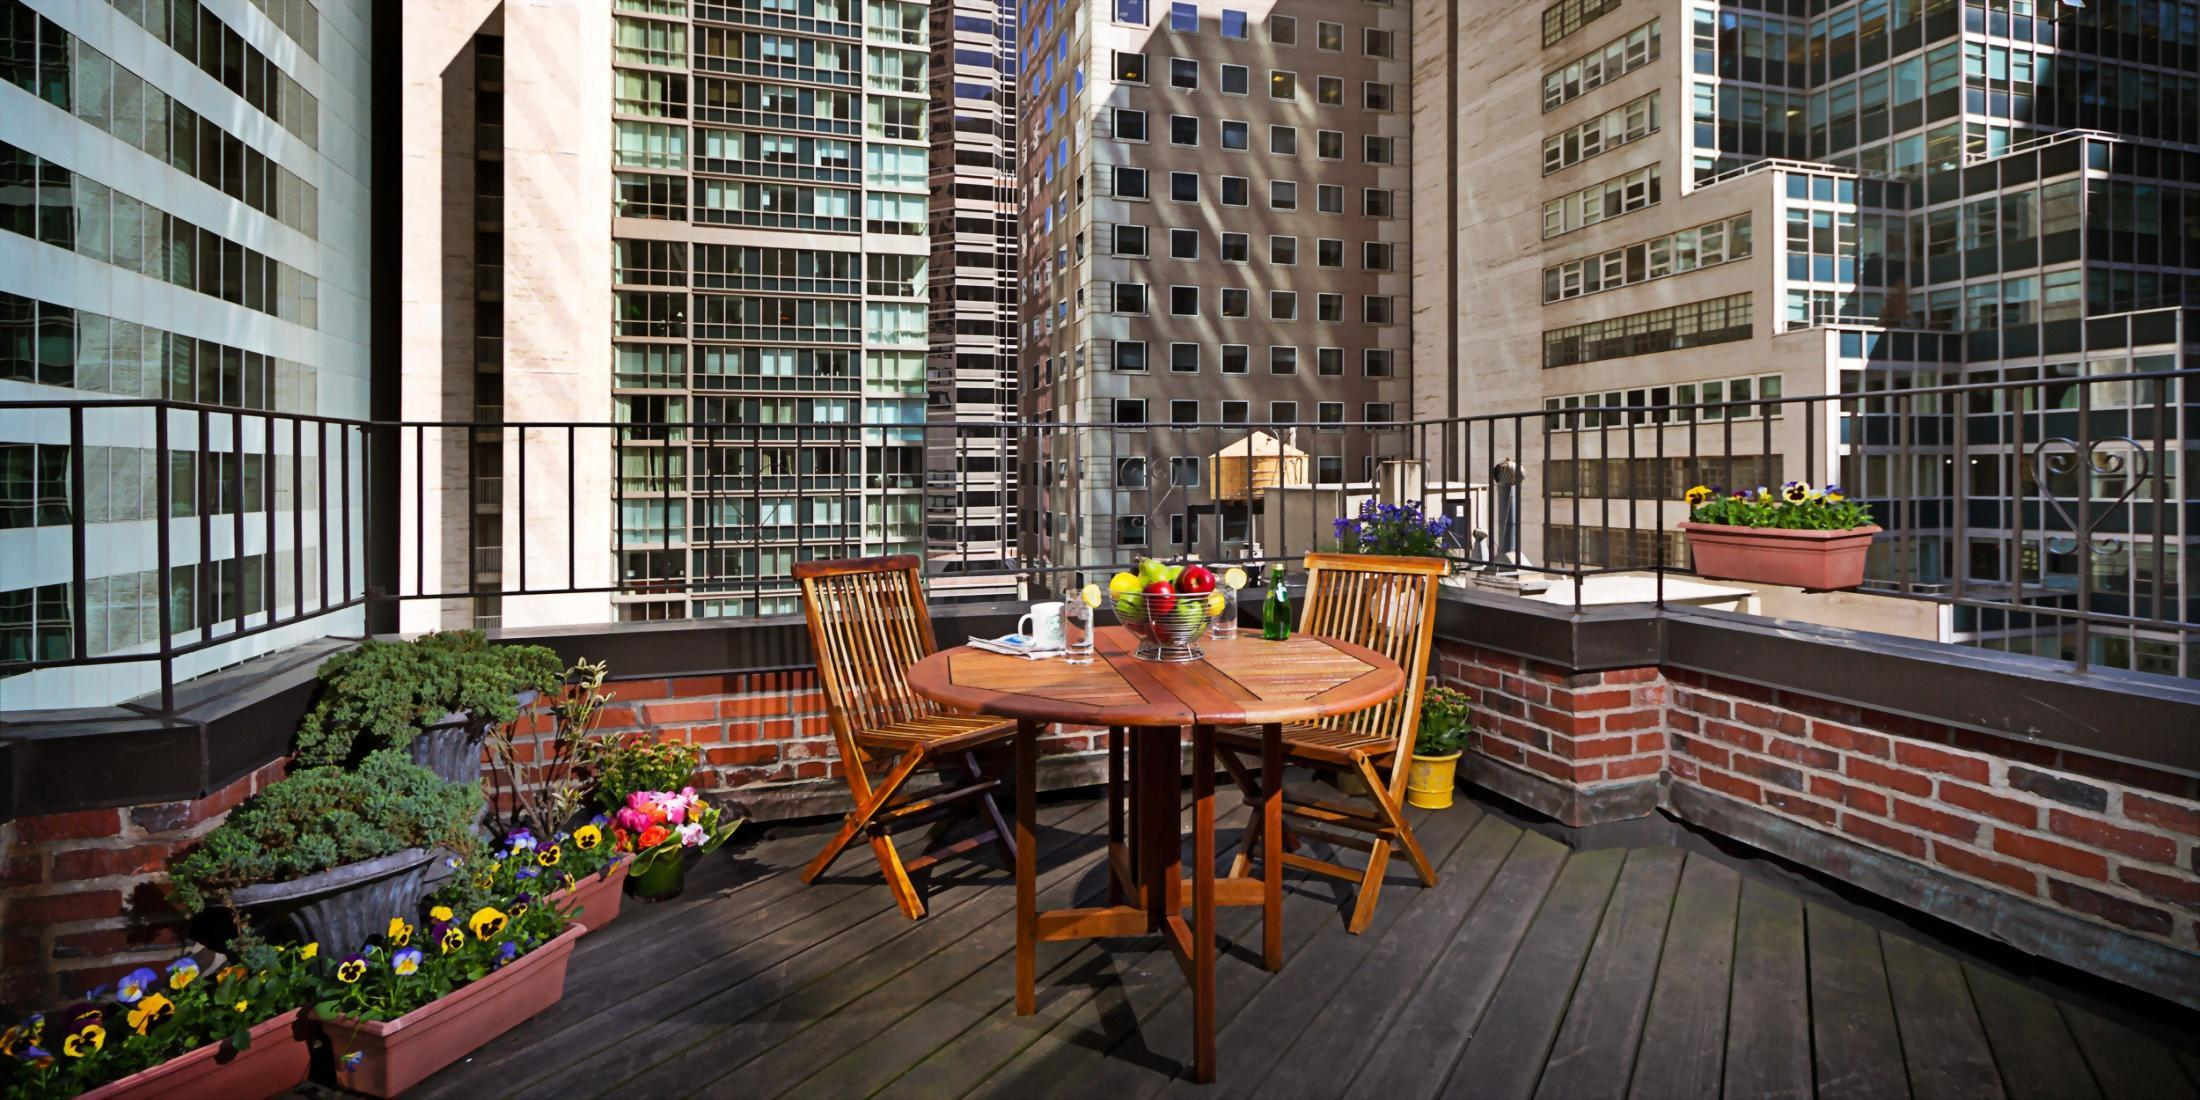 outdoor terrace with table overlooking the streets of manhattan